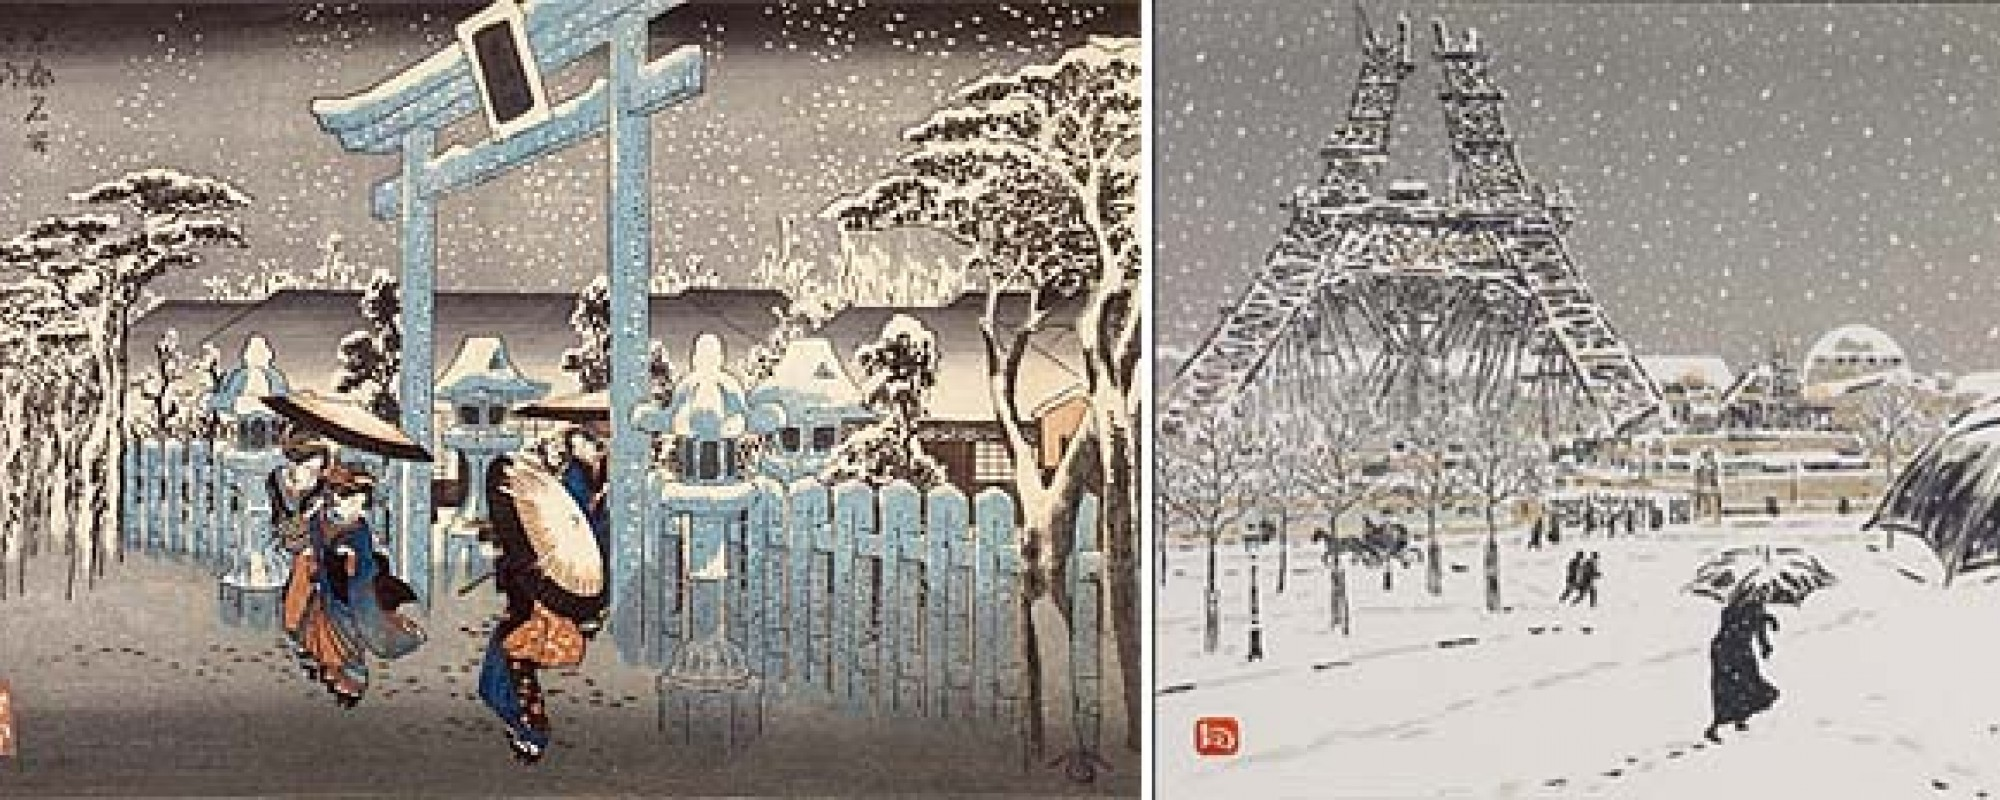 D Printing Exhibition Tokyo : Japanesque the japanese print in era of impressionism